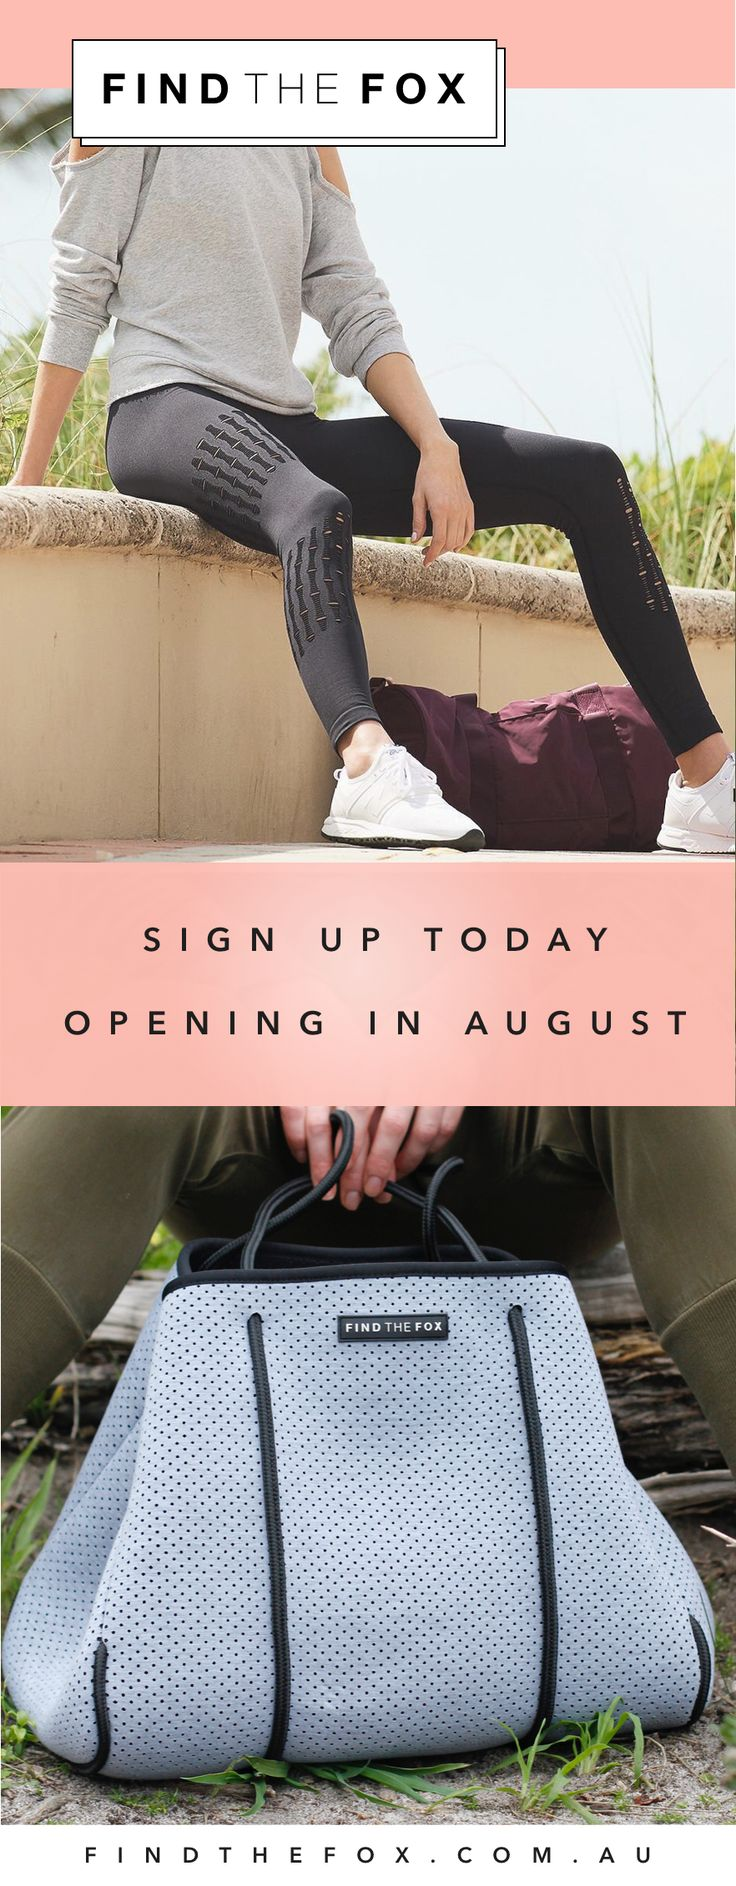 Find The Fox makes stylish neoprene tote bags and other fashionable accessories. Opening in August. Sign up today to receive a discount on your first purchase!